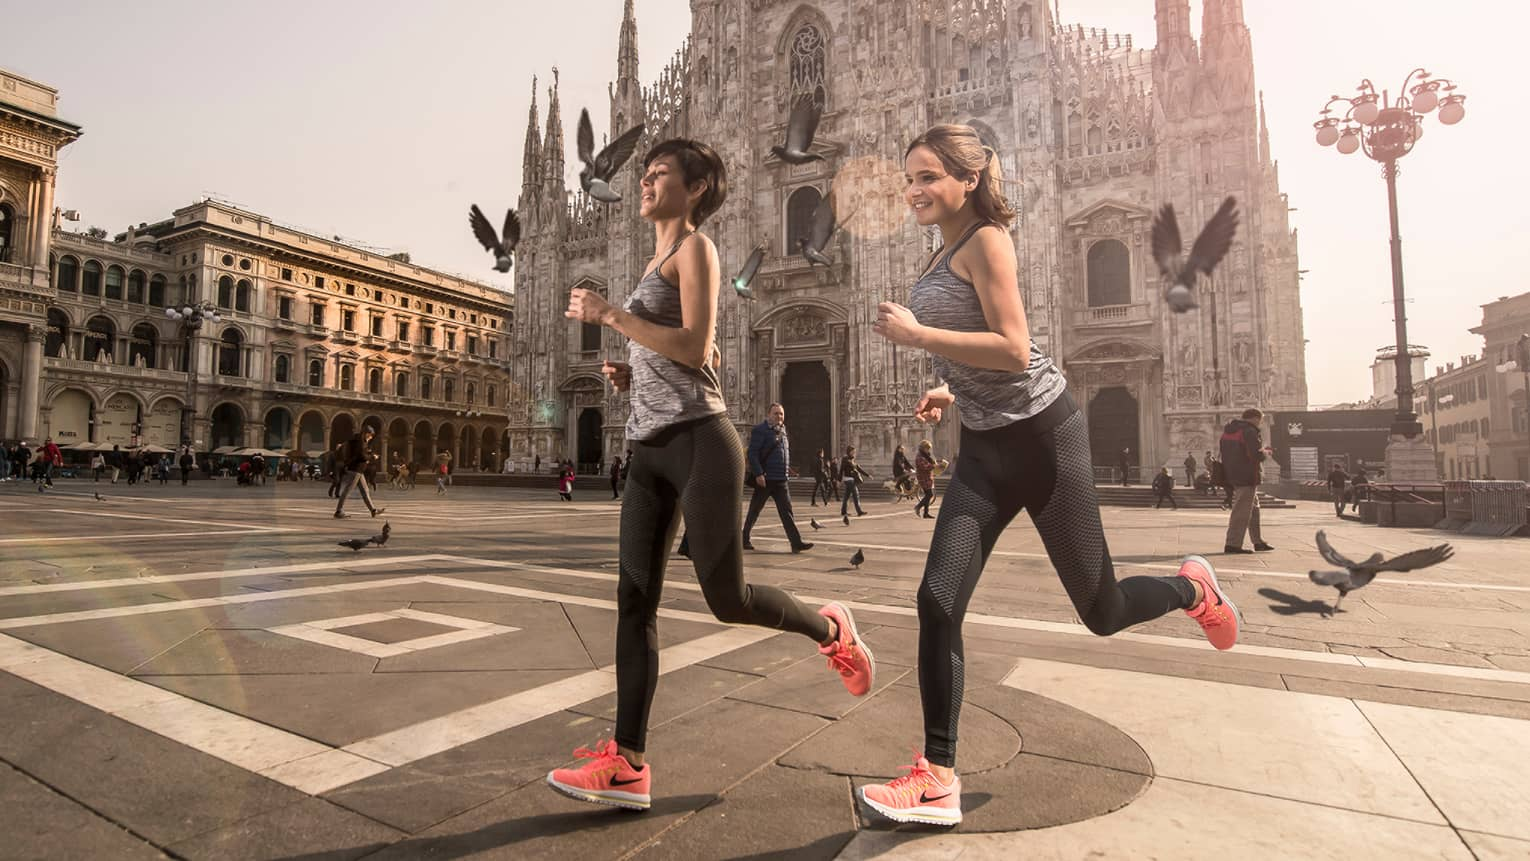 Two women wearing exercise clothes, Nike shoes, jog across outdoor courtyard by historic church